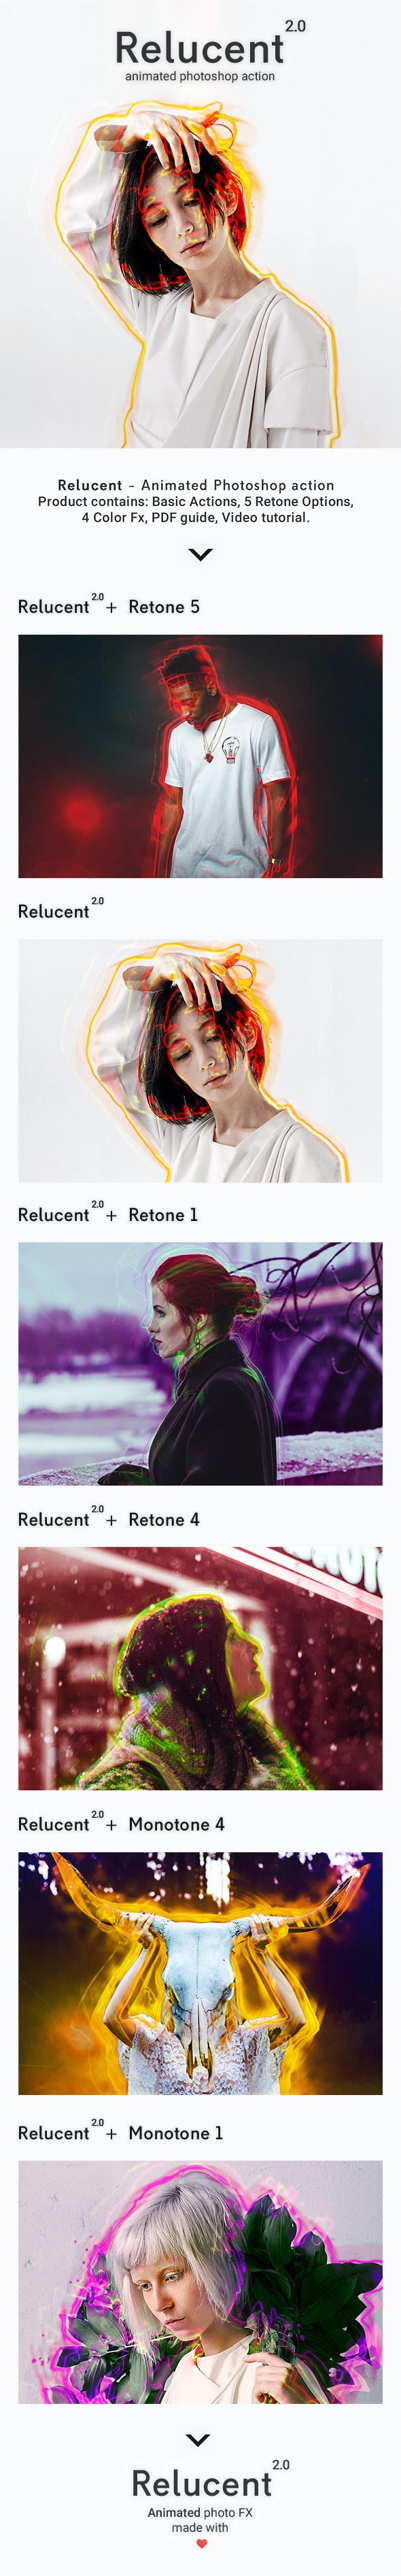 Animated Relucent 2.0 - Photoshop Action - Photo Effects Actions